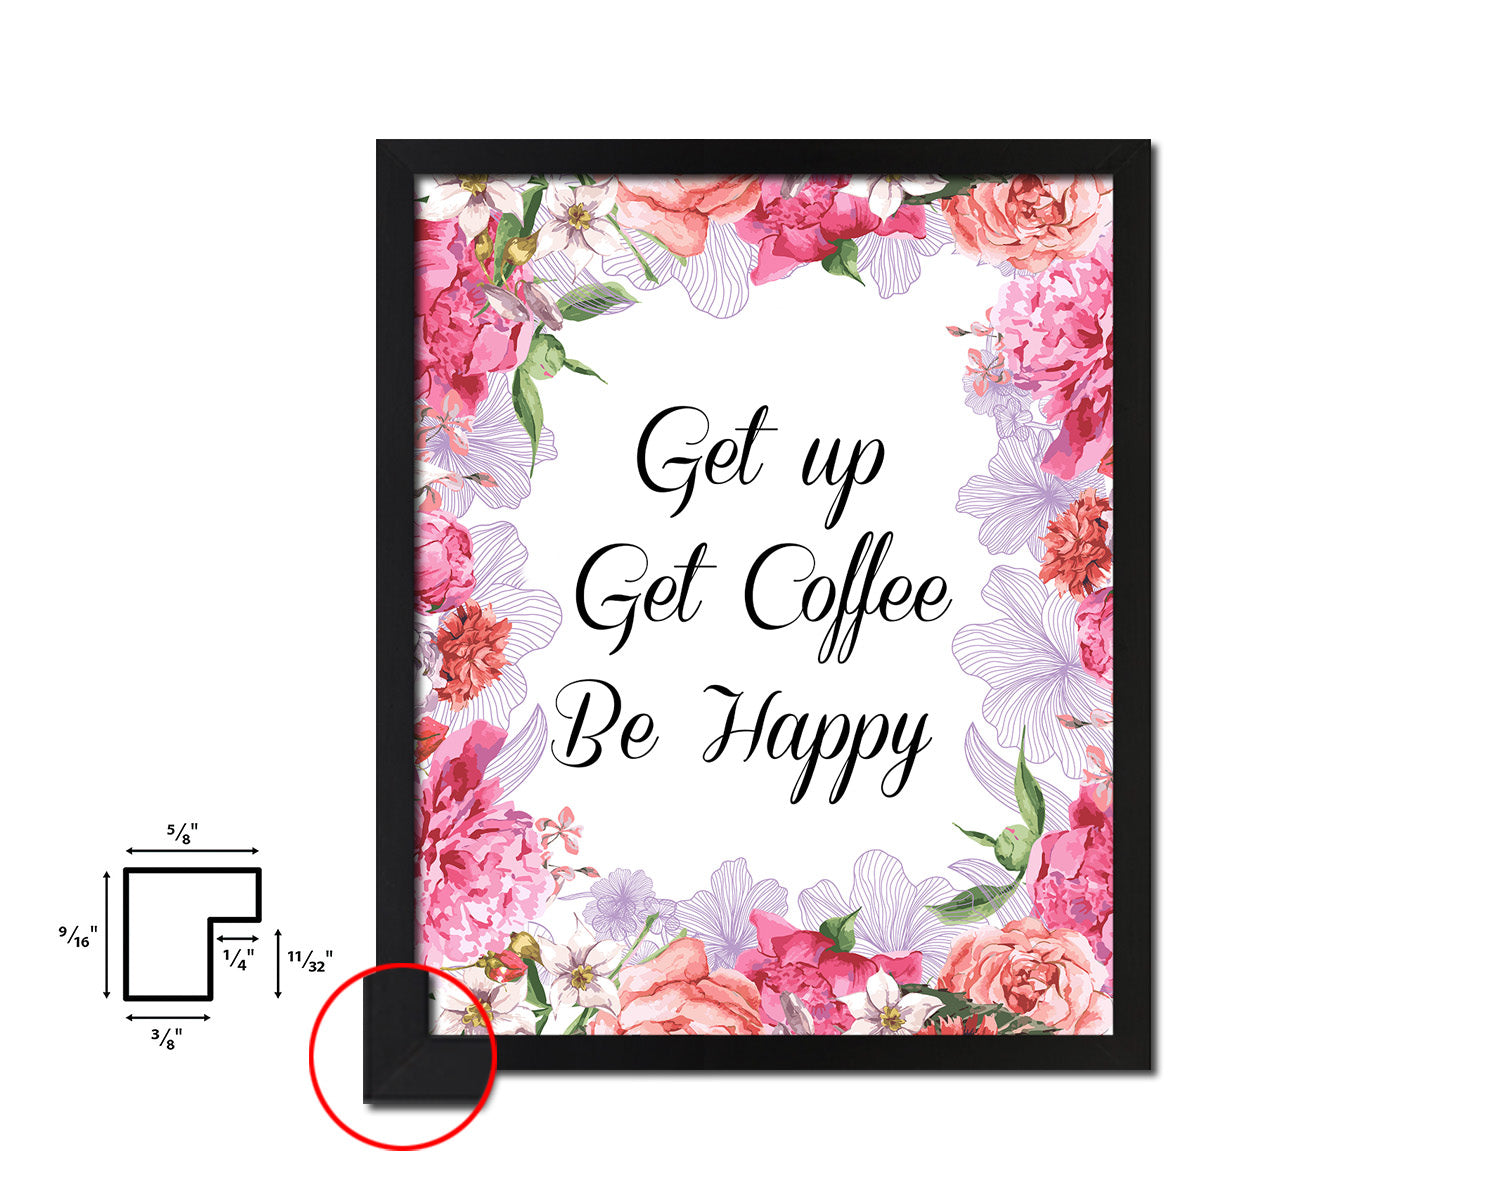 Get up get coffee be happy Quote Framed Artwork Print Wall Decor Art Gifts